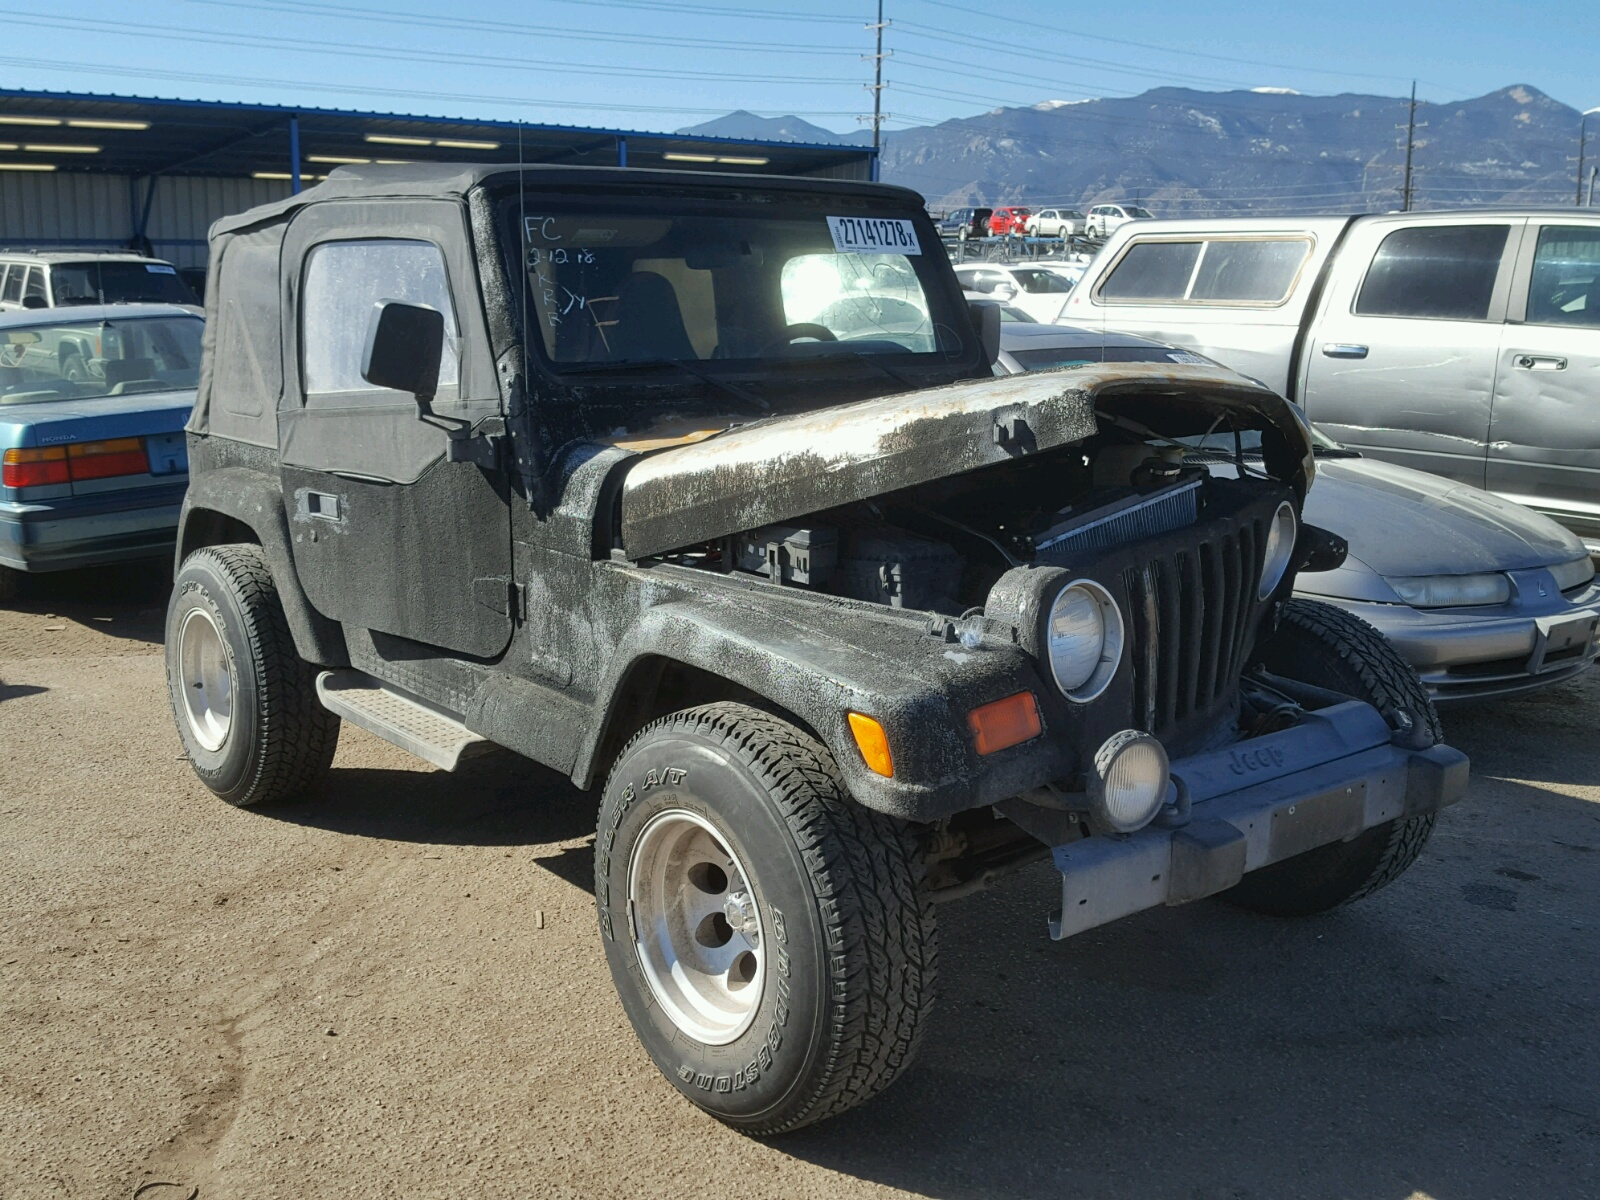 unlimited cars smyrna dodge jk used in and chrysler dealers wrangler ram jeep new img at sale for